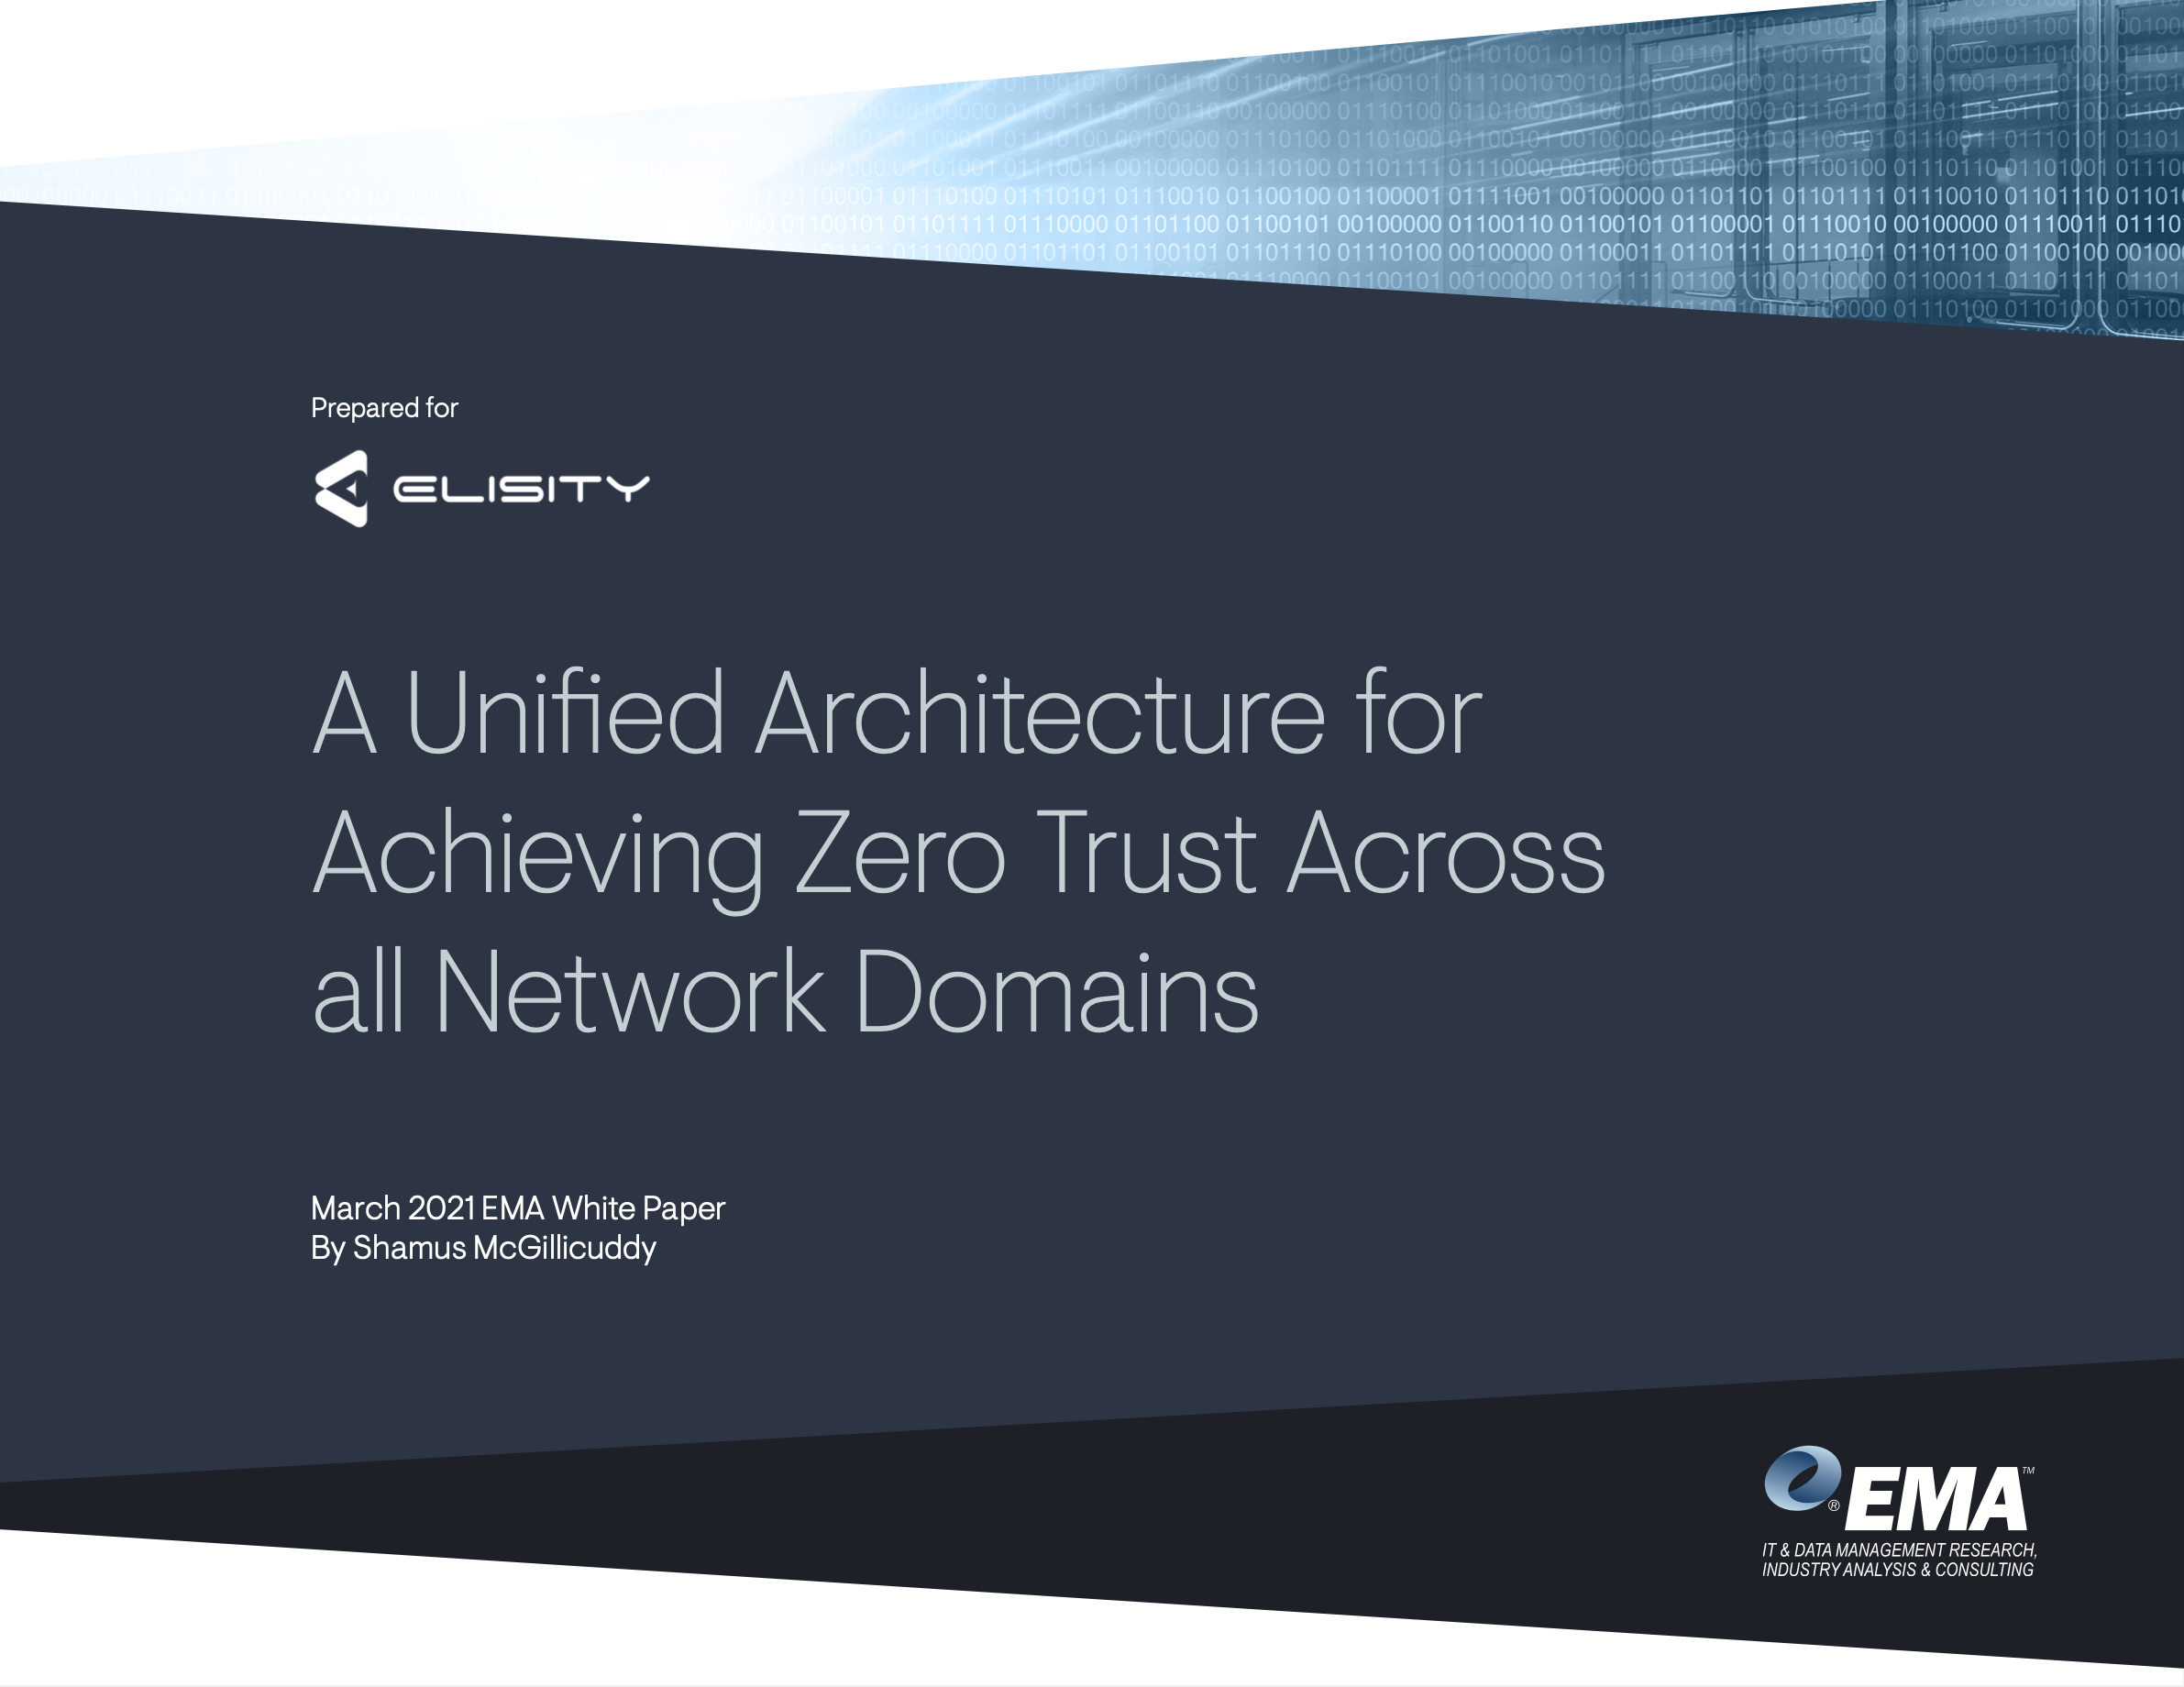 EMA A Unified Architecture for Achieving Zero Trust Across all Network Domains